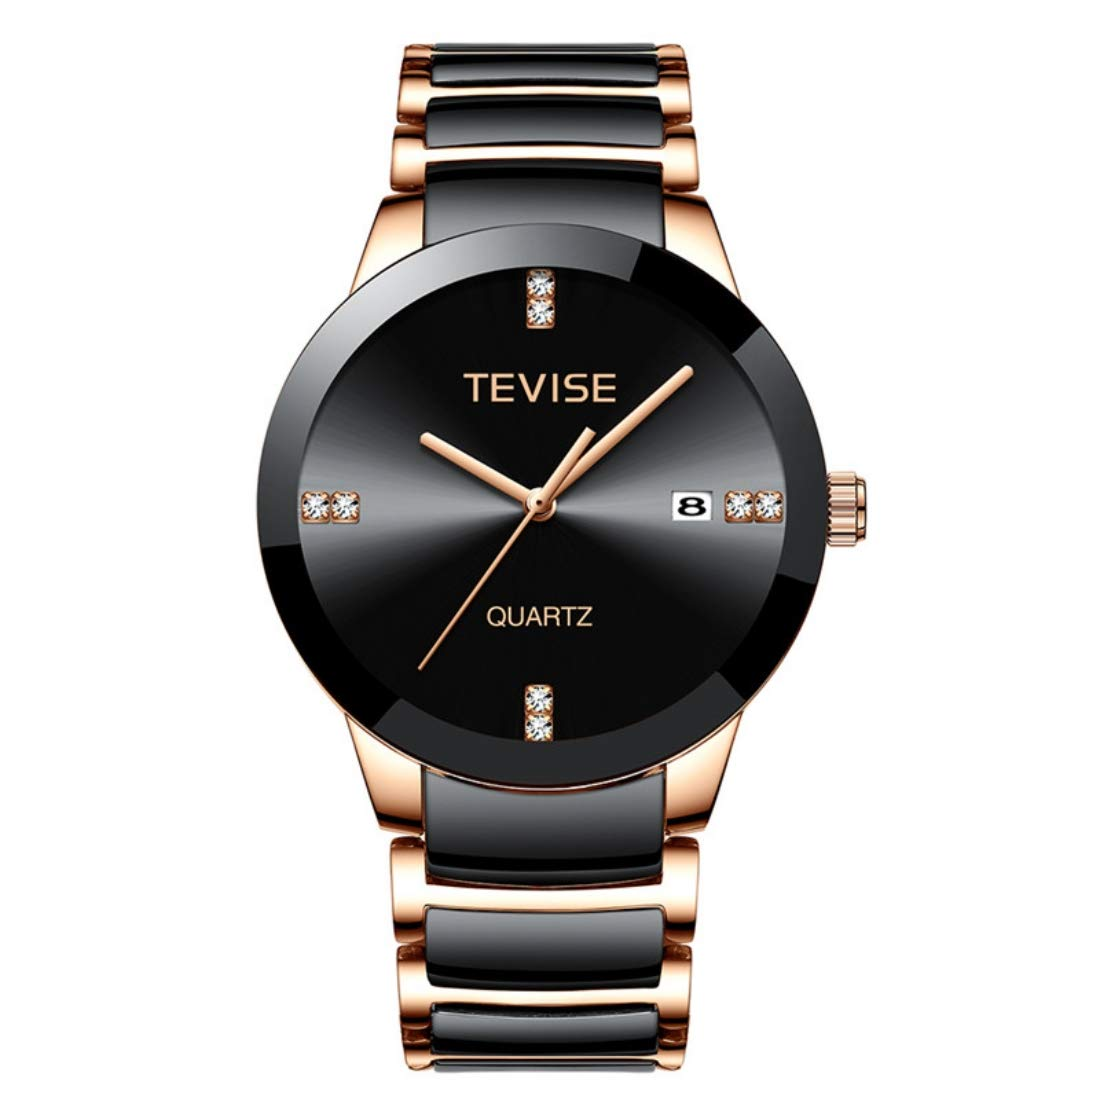 Tevise Ceramic Band Analog Black Watch for Men - 845 (B07WVZPB1N) Amazon Price History, Amazon Price Tracker